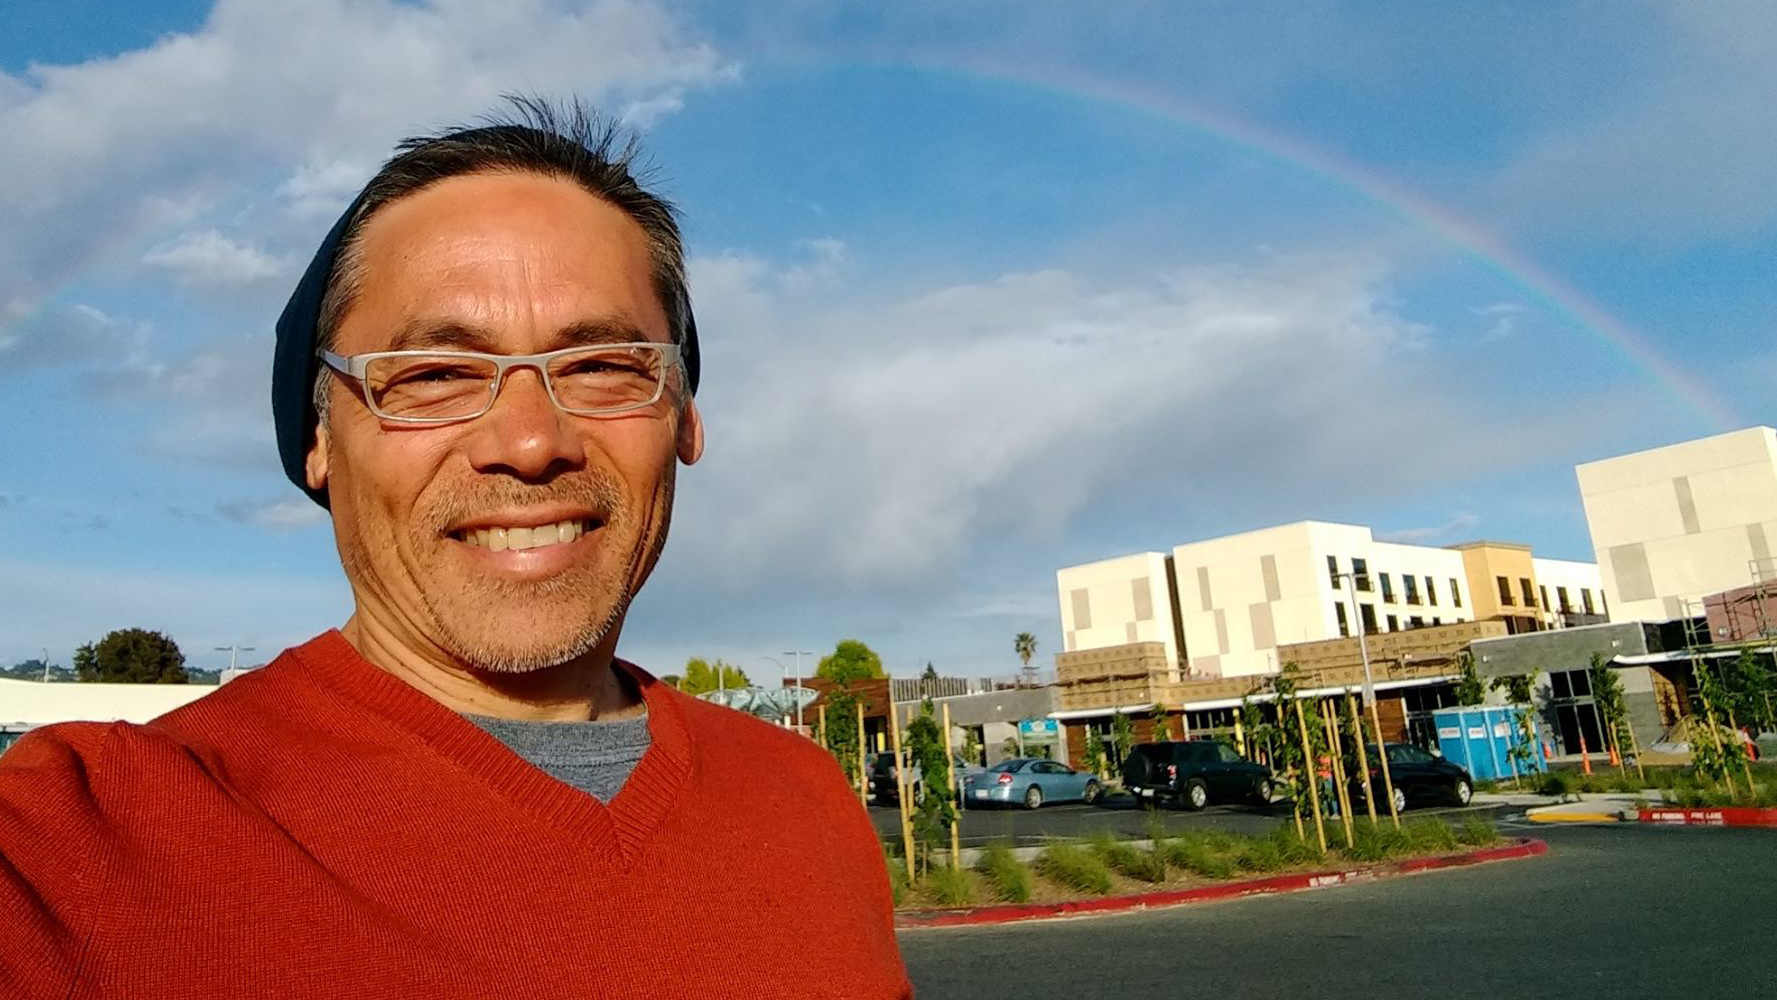 Episode 12: Legumes in Space with Ted Tagami